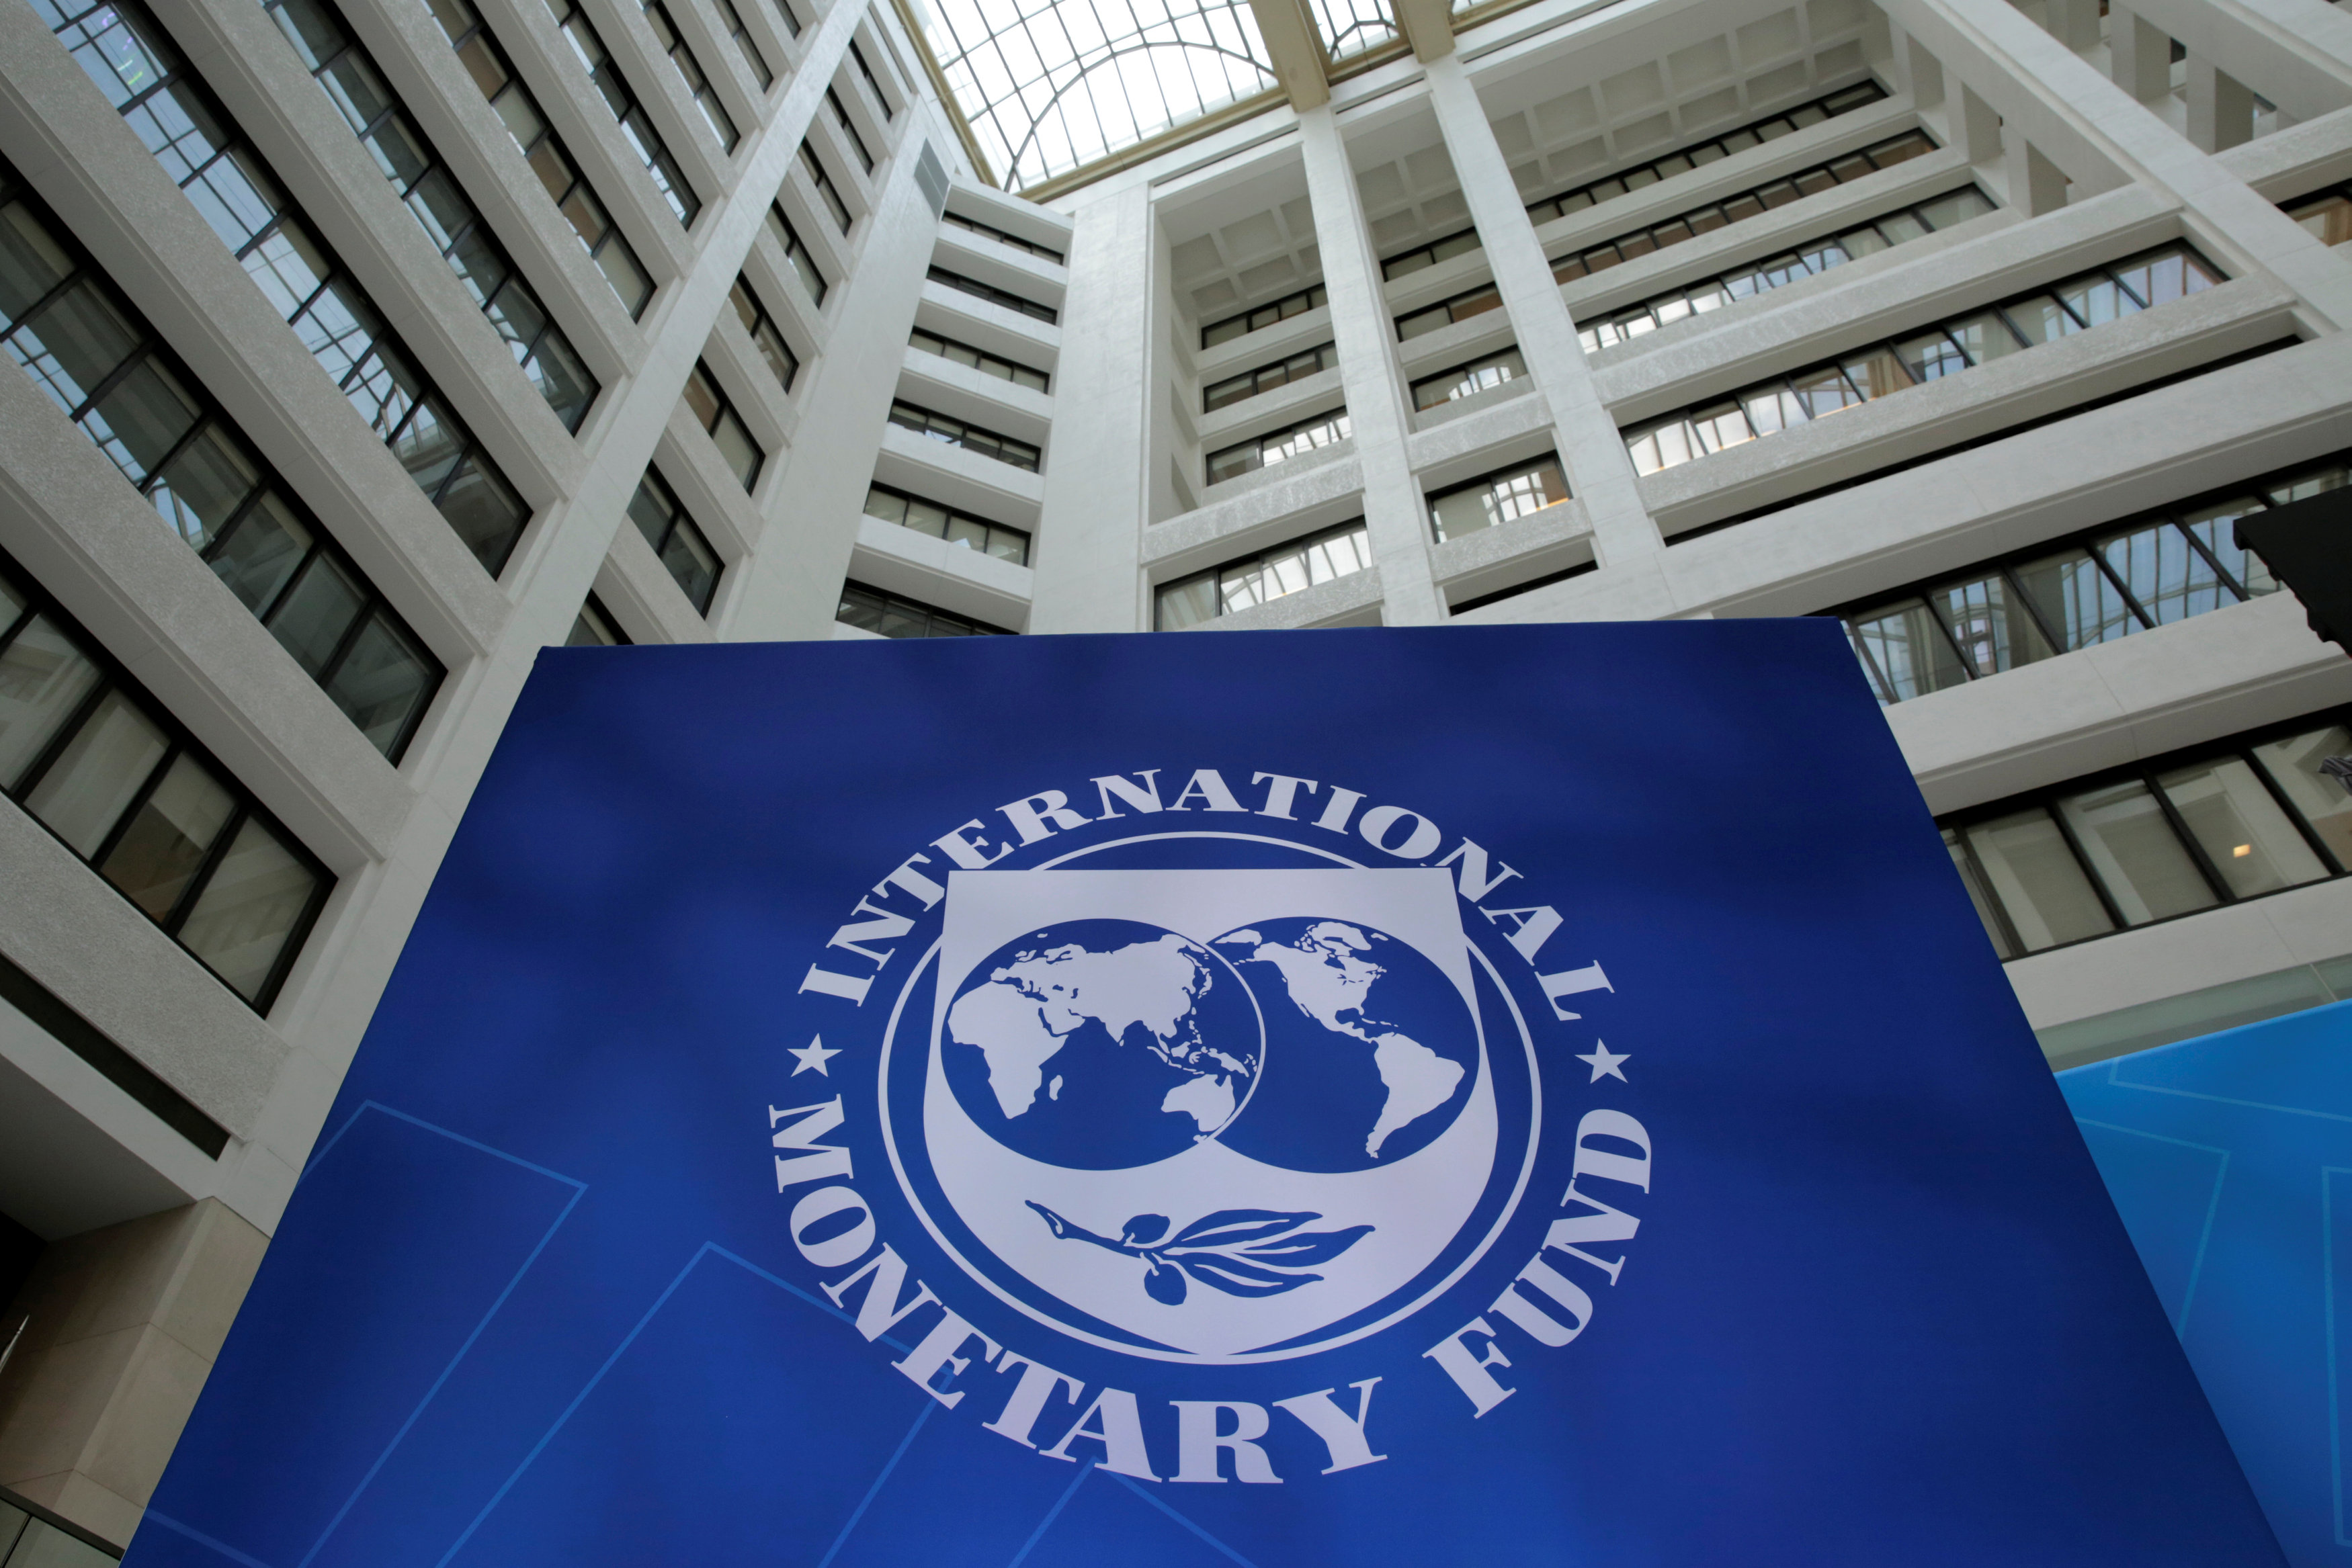 Ukraine secures new $3.9bn IMF deal after gas price hike